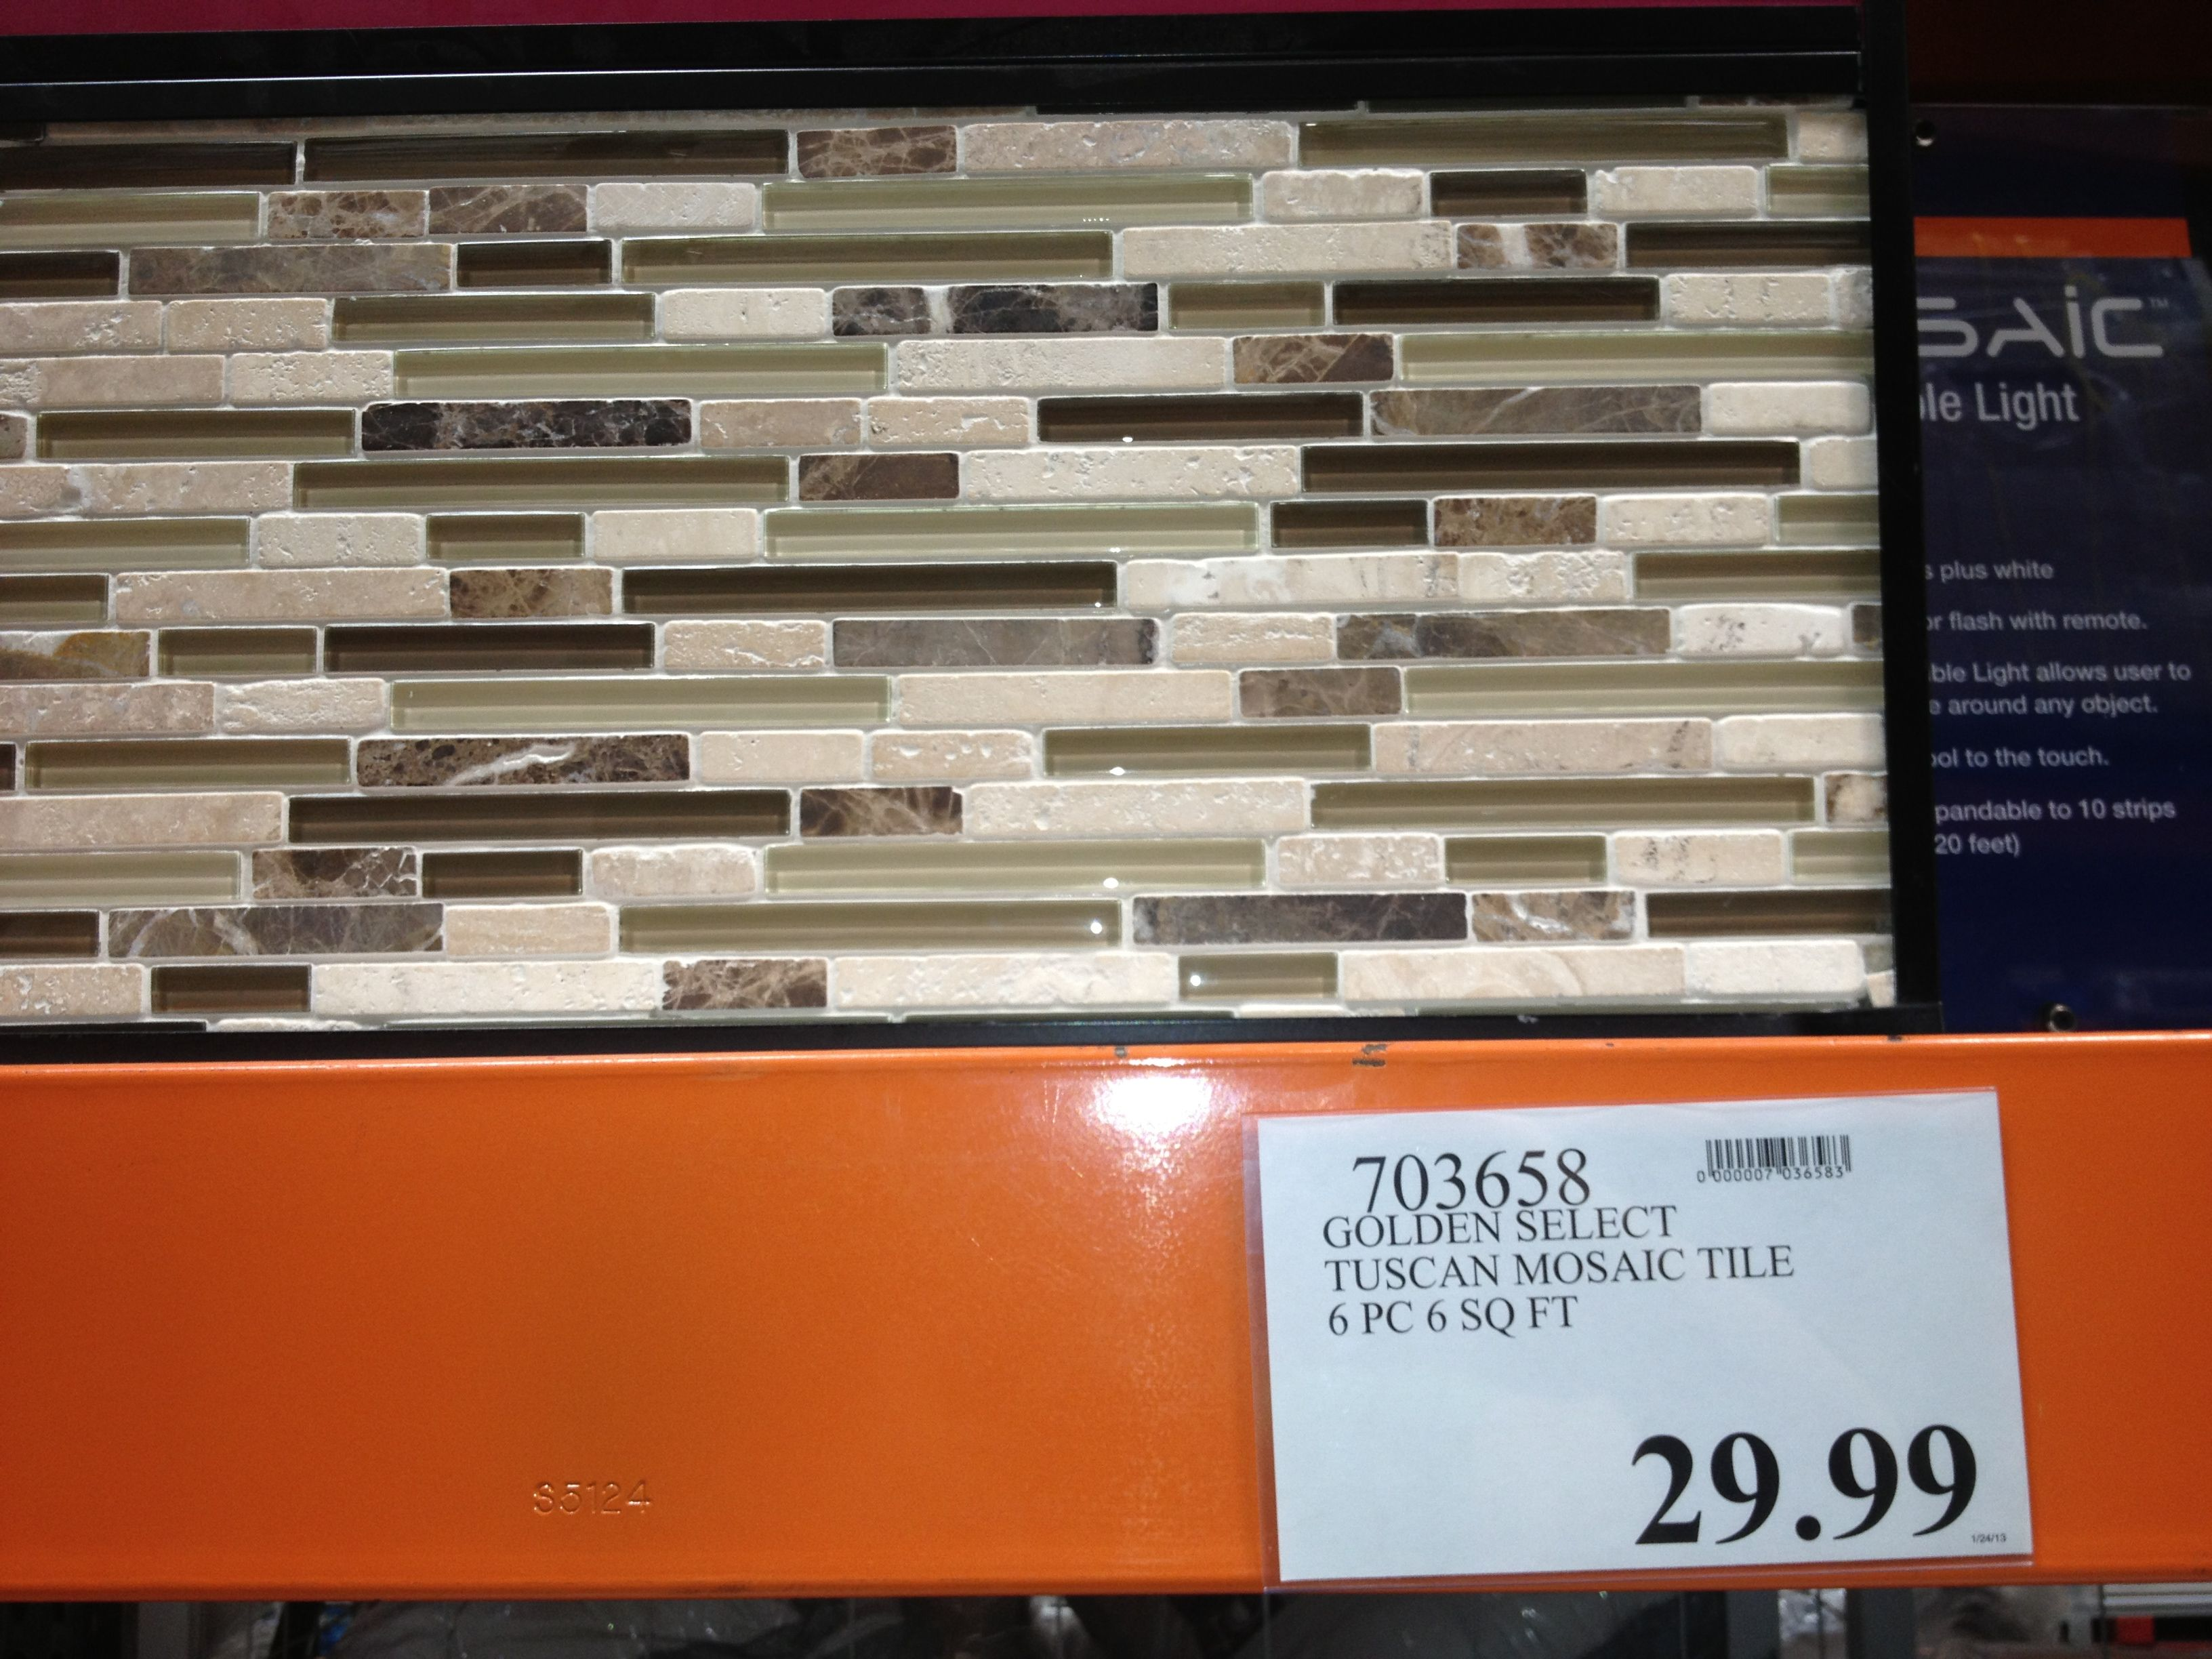 Golden select Glass and Stone Tuscan Mosaic Tile - 6pc for 6 sqft ...